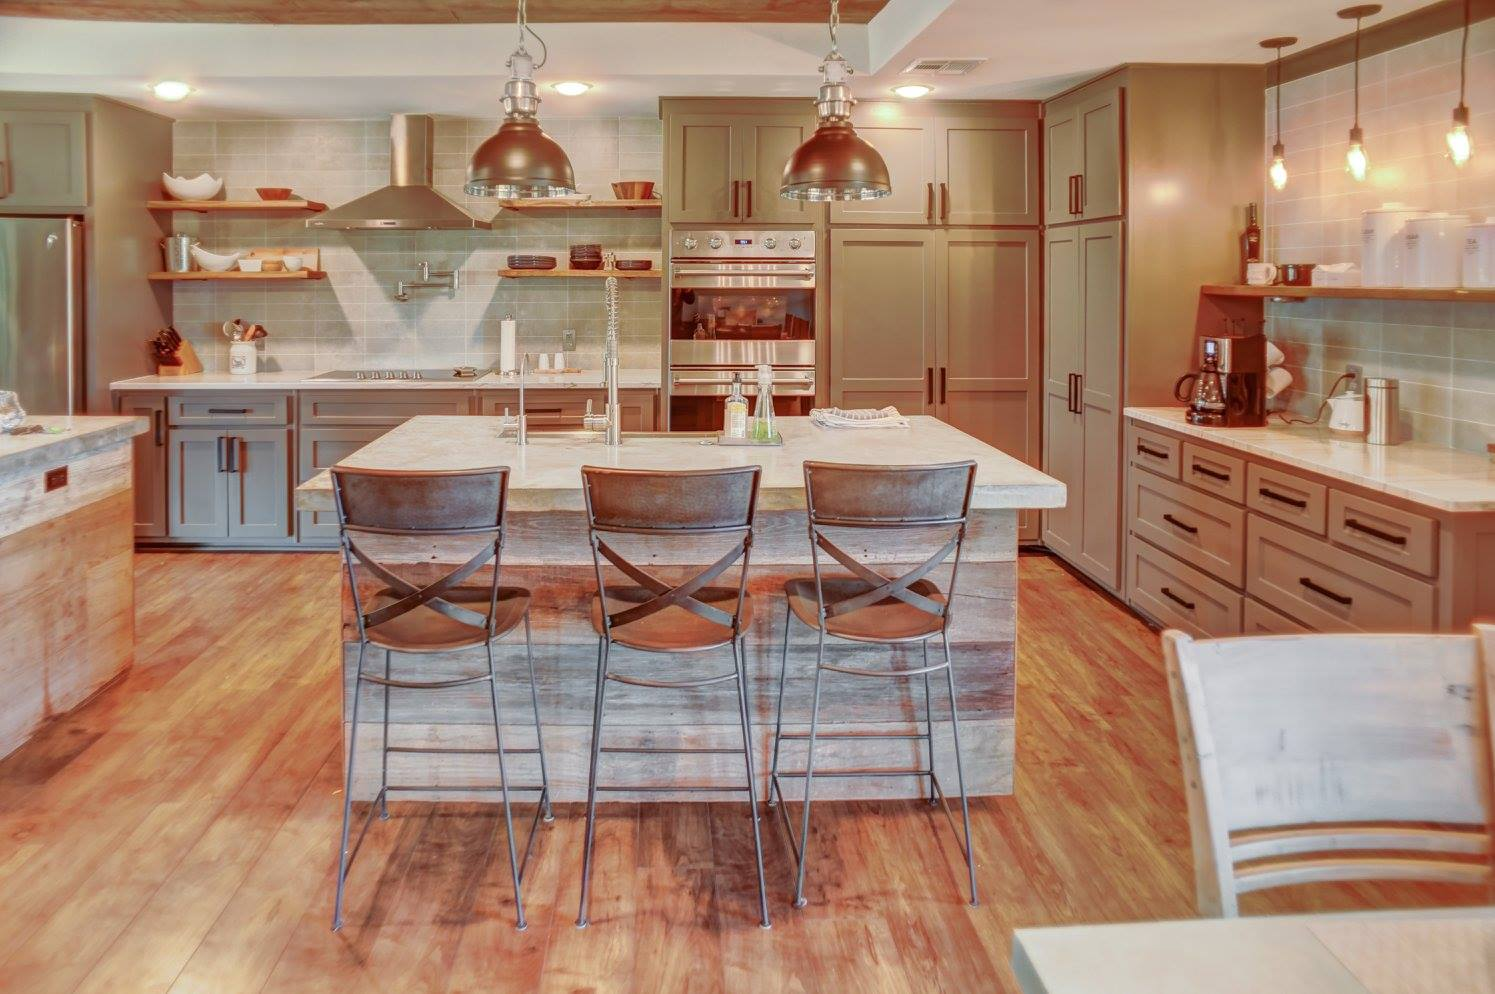 The famous 2-island kitchen -